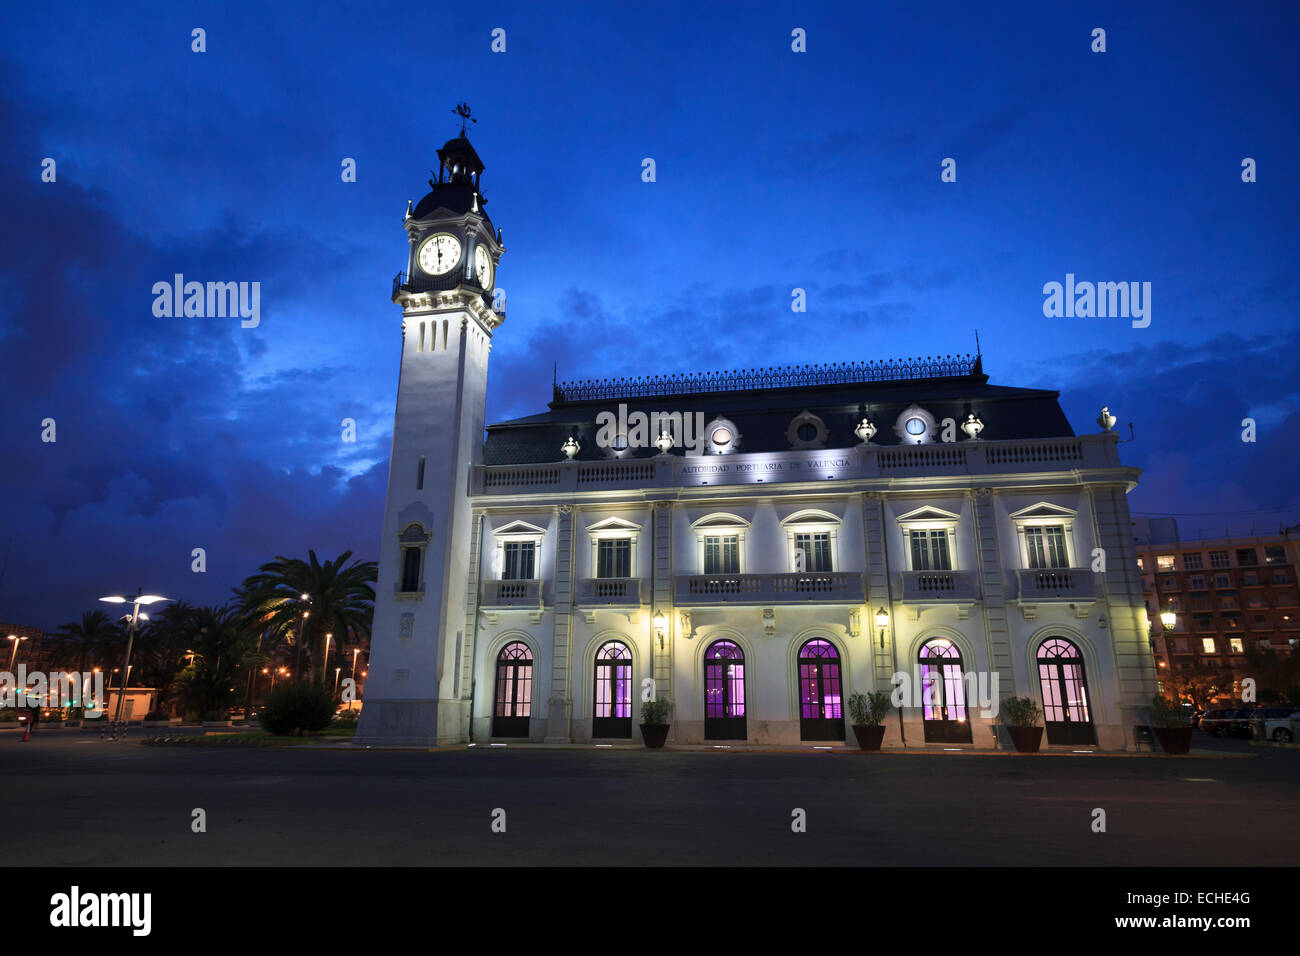 Exterior of the Port Authority of Valencia Building at dusk with it's clock tower - Stock Image